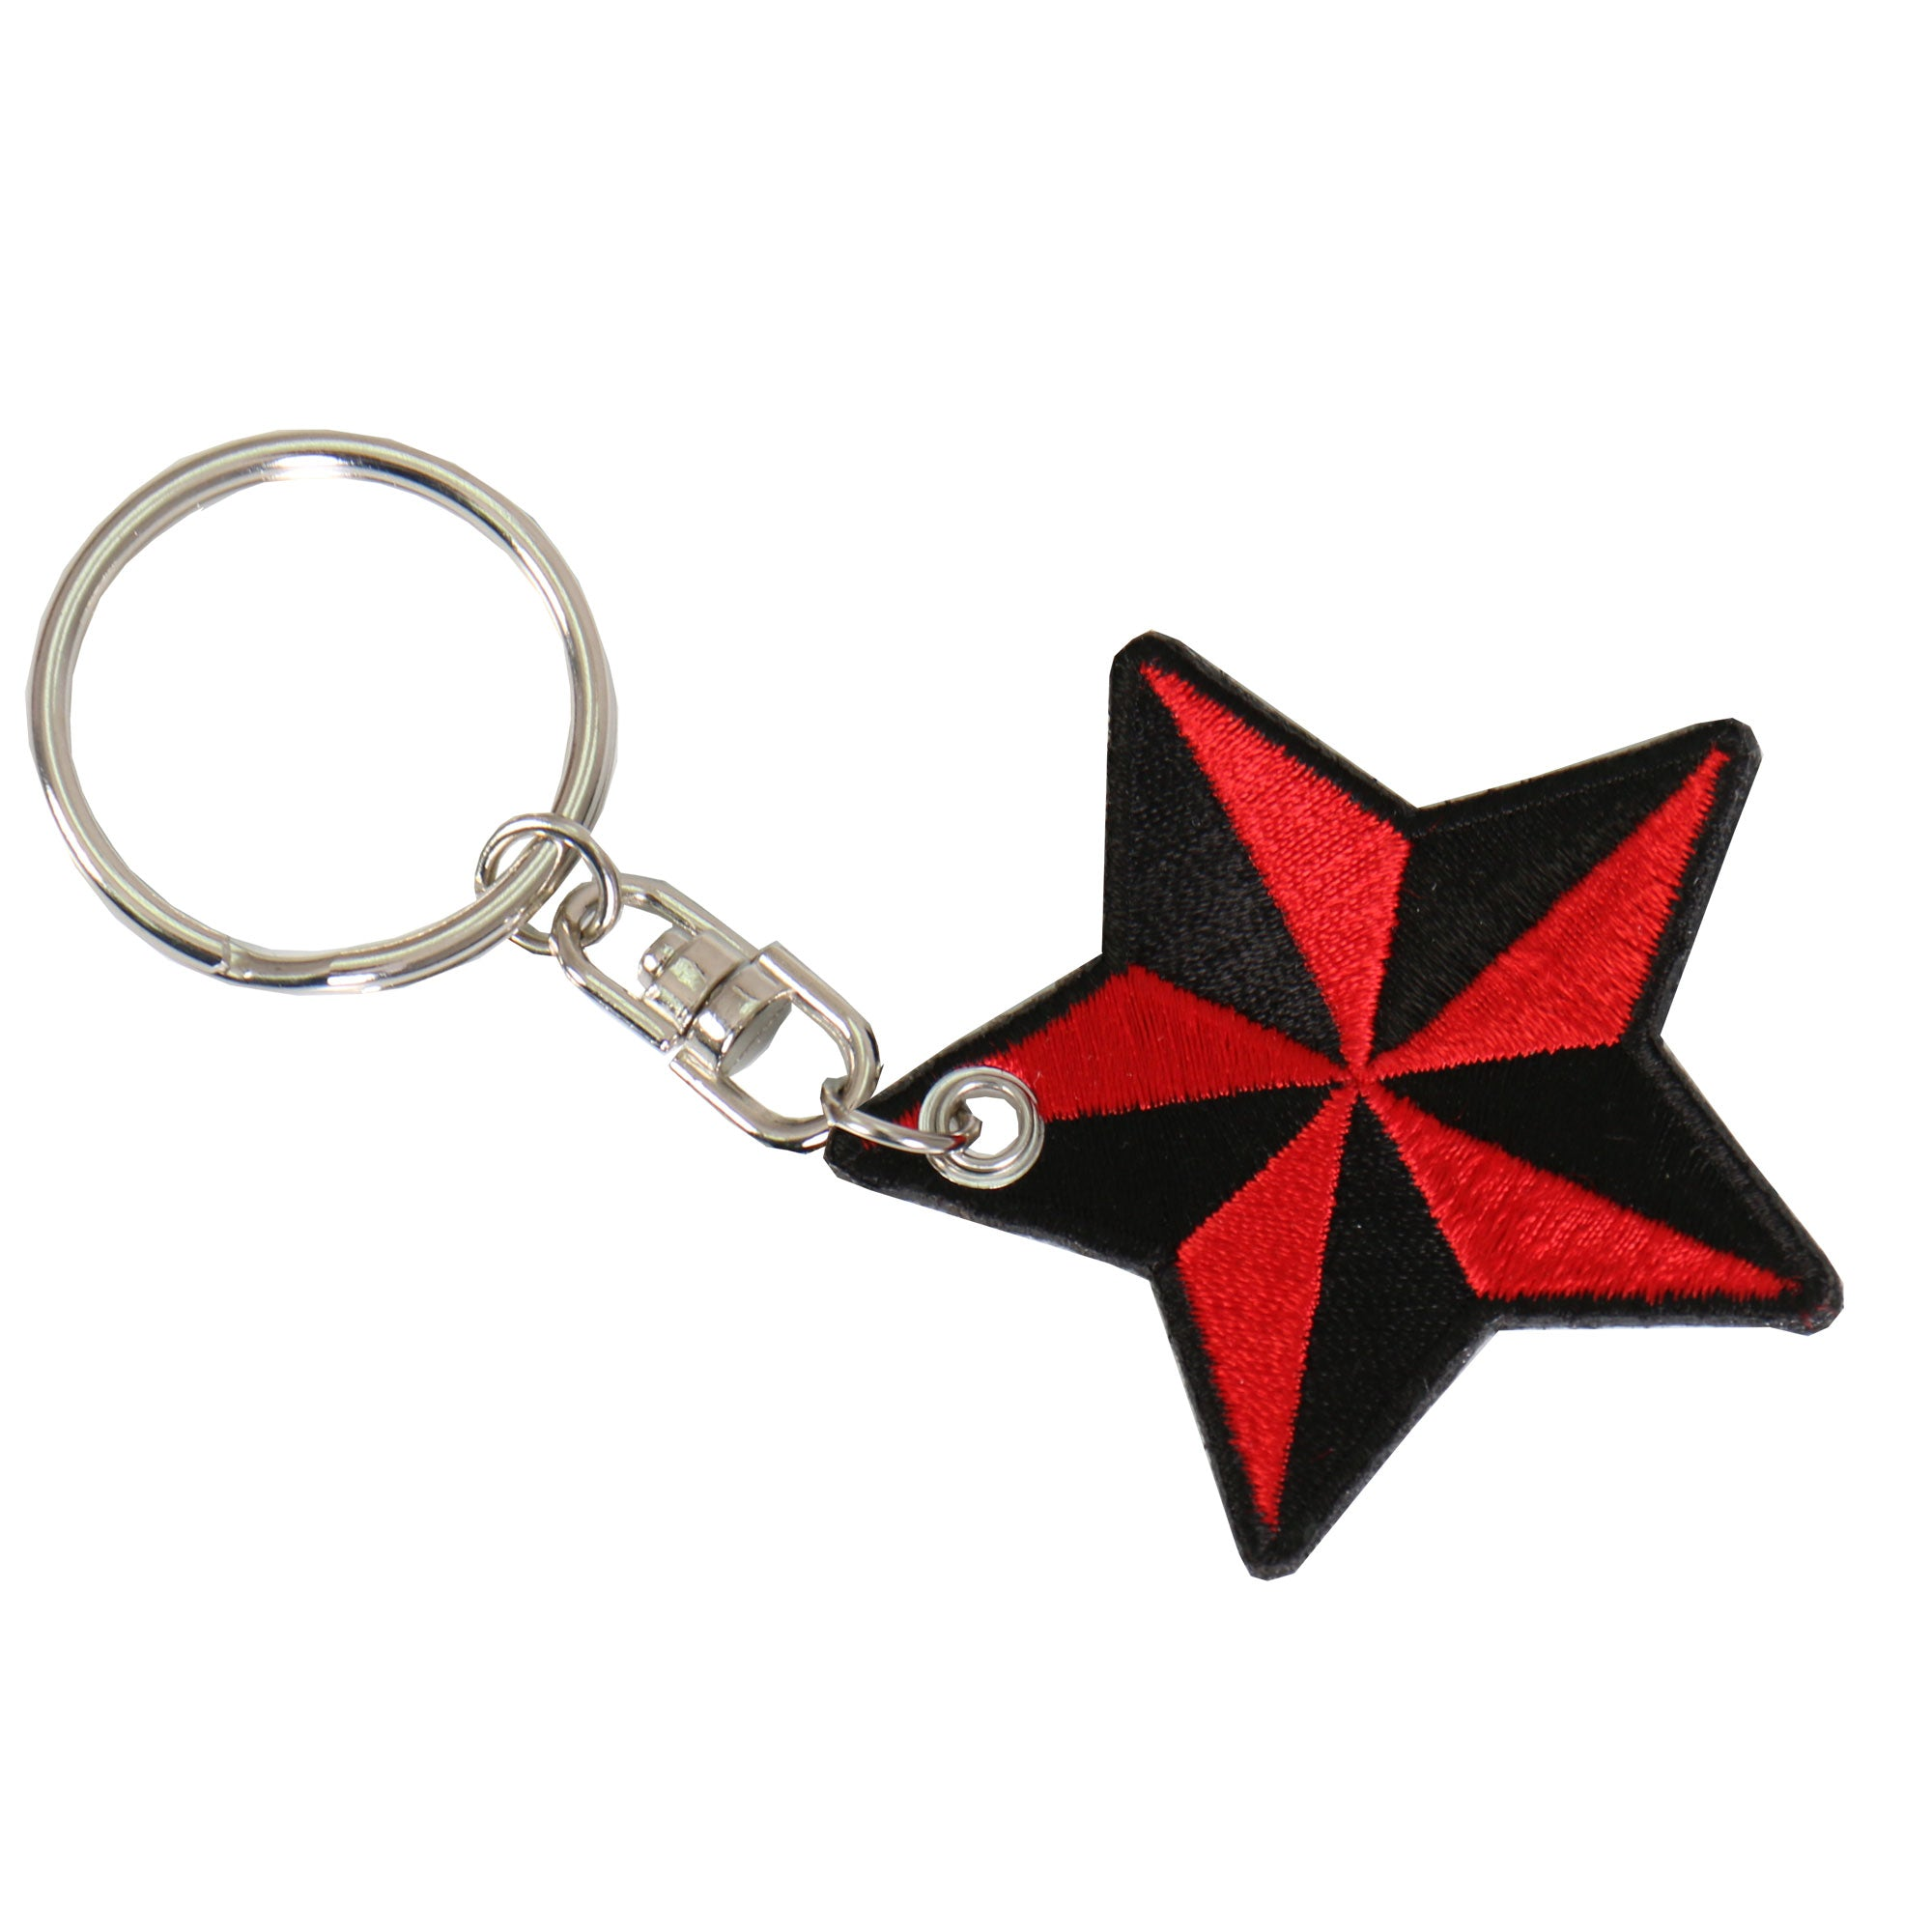 Hot Leathers American Nautical Embroidered Key Chain